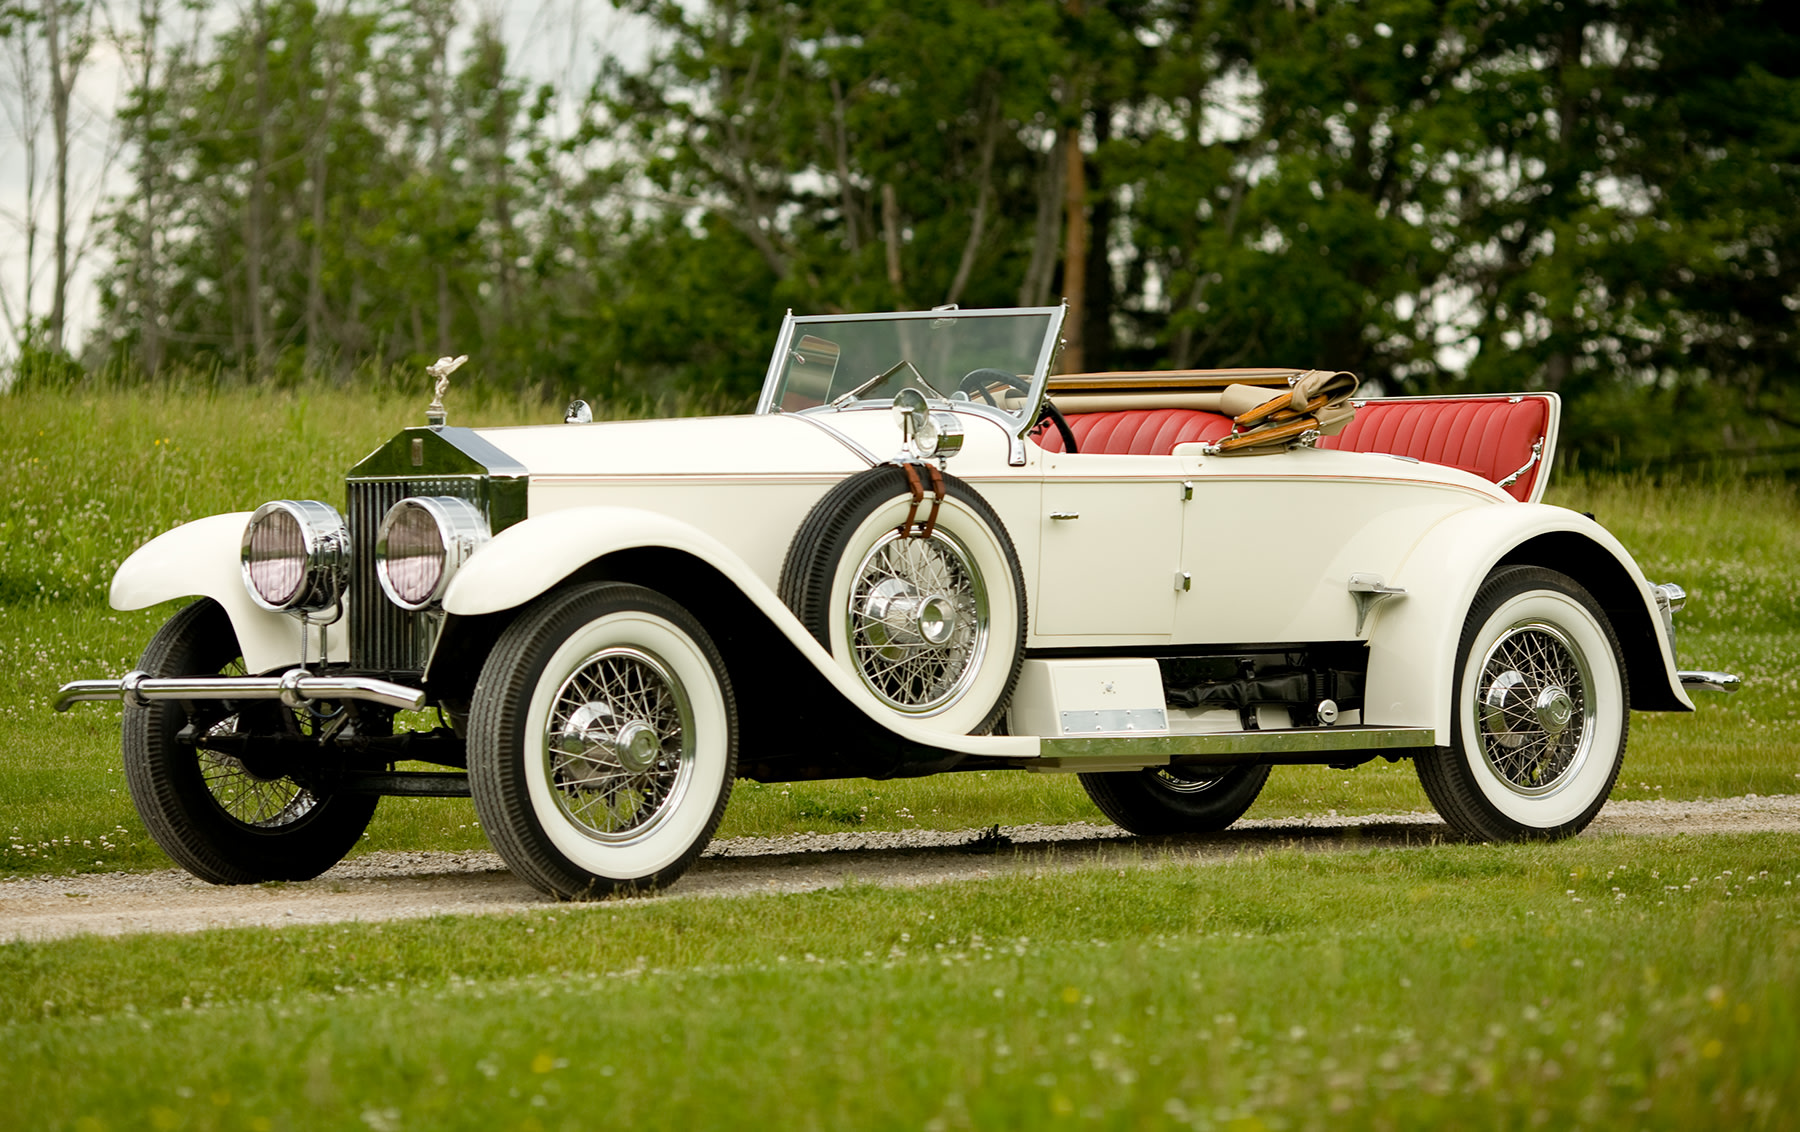 1926 Rolls-Royce Silver Ghost Piccadilly Roadster